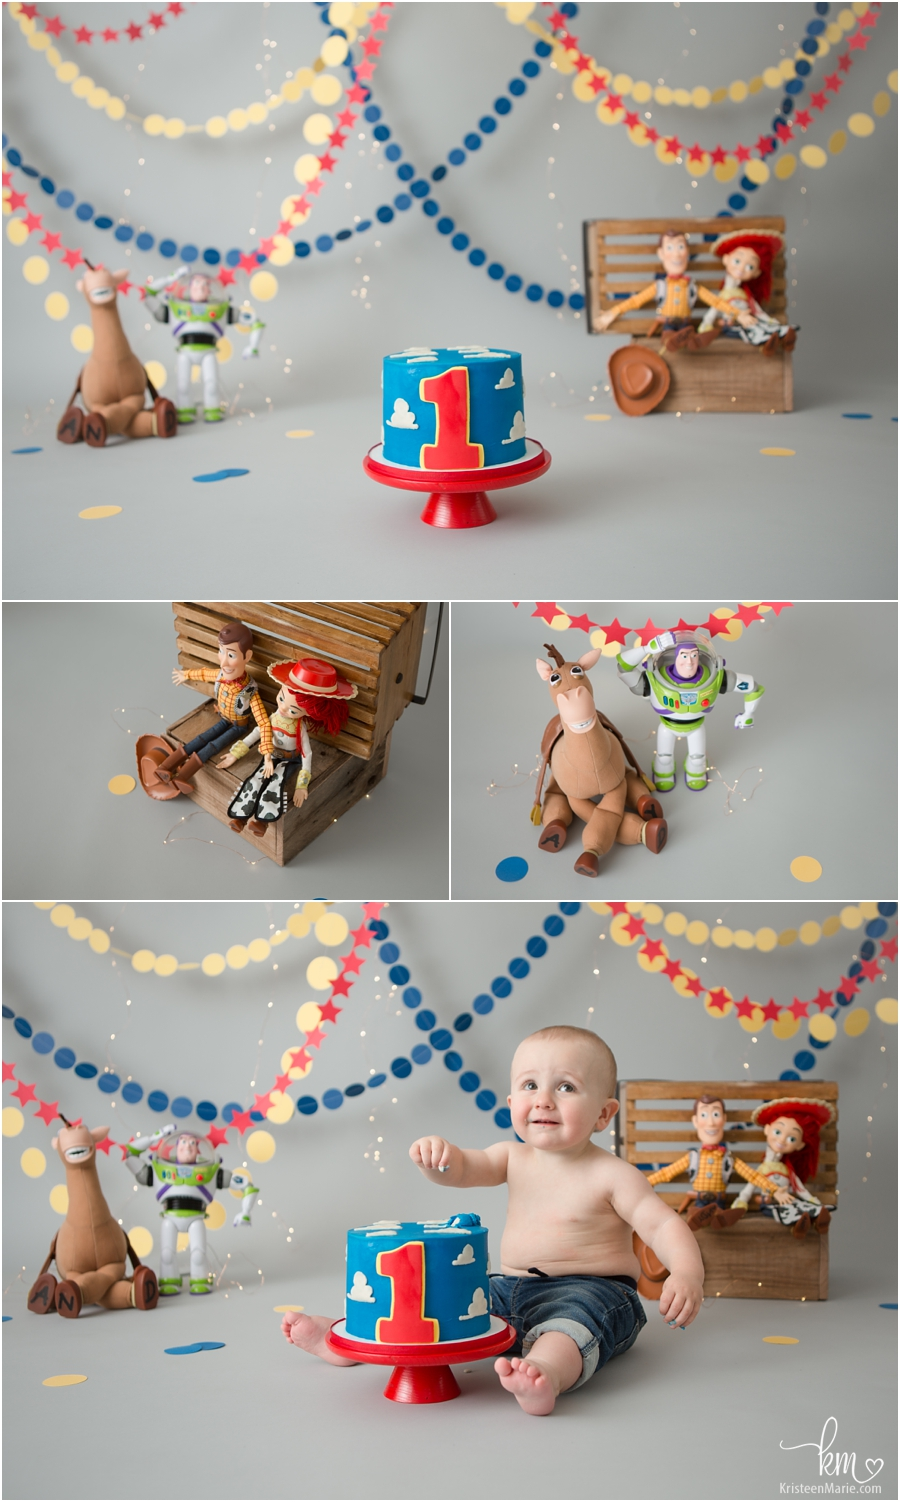 Toy Story Cake Smash Session - the detials and toys